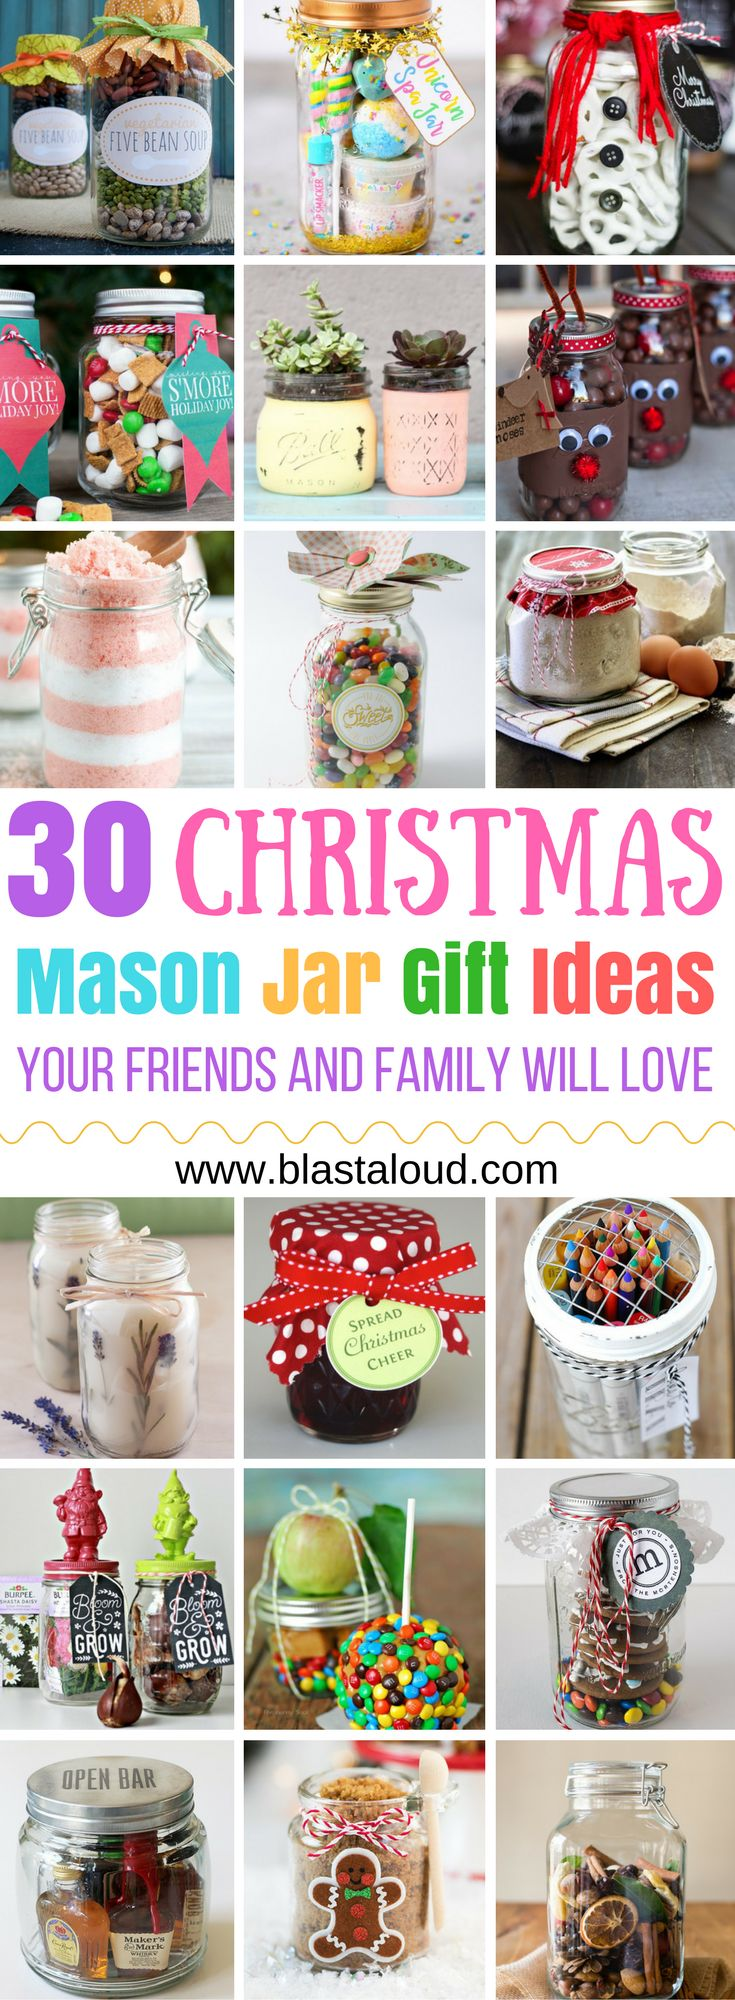 If you love making gifts for your family and friends you HAVE to try these! Soooo glad I found these amazing mason jar gift ideas for Christmas! Now I don't have to worry about what gifts to get for my family! #christmas #christmasgifts #masonjar #masonjargifts #giftideas #giftinajar